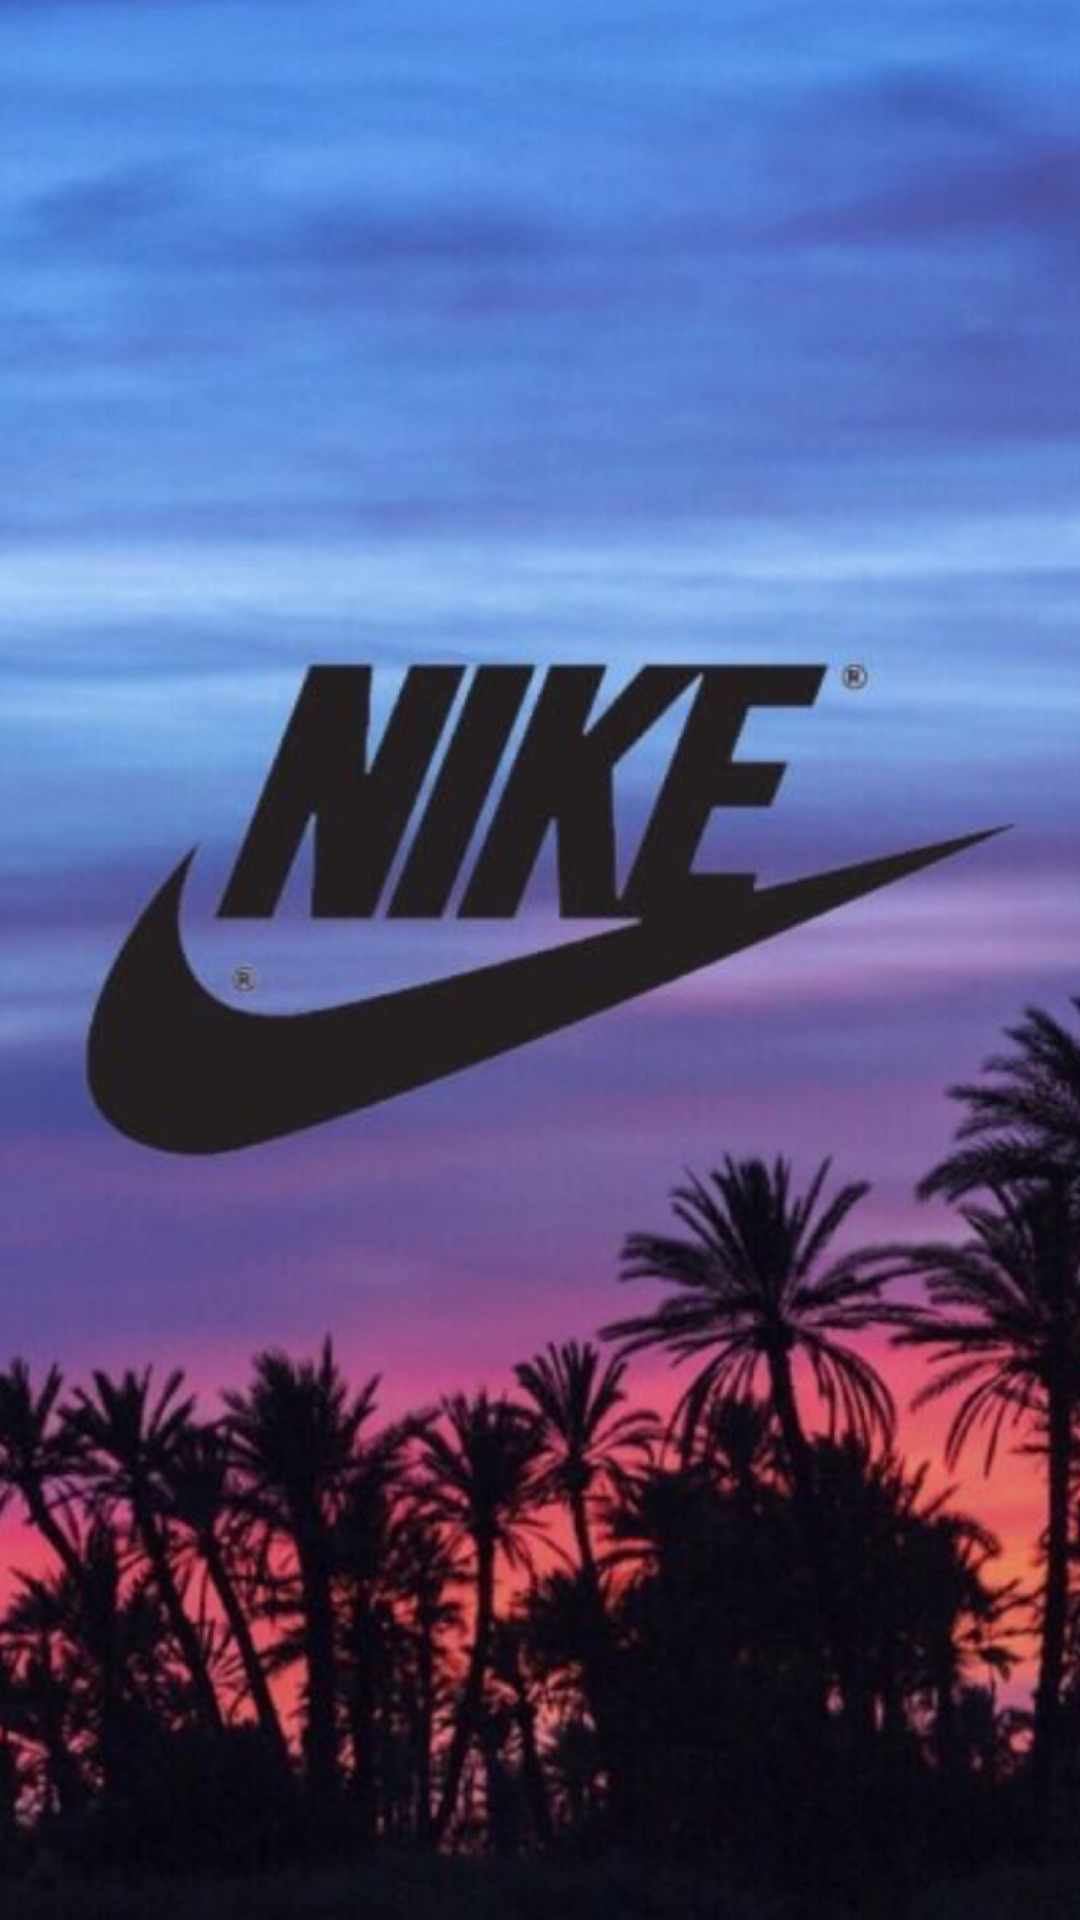 Wallpapers Adidas Girl Hd Nike Backgrounds For Iphone Pixelstalk Net